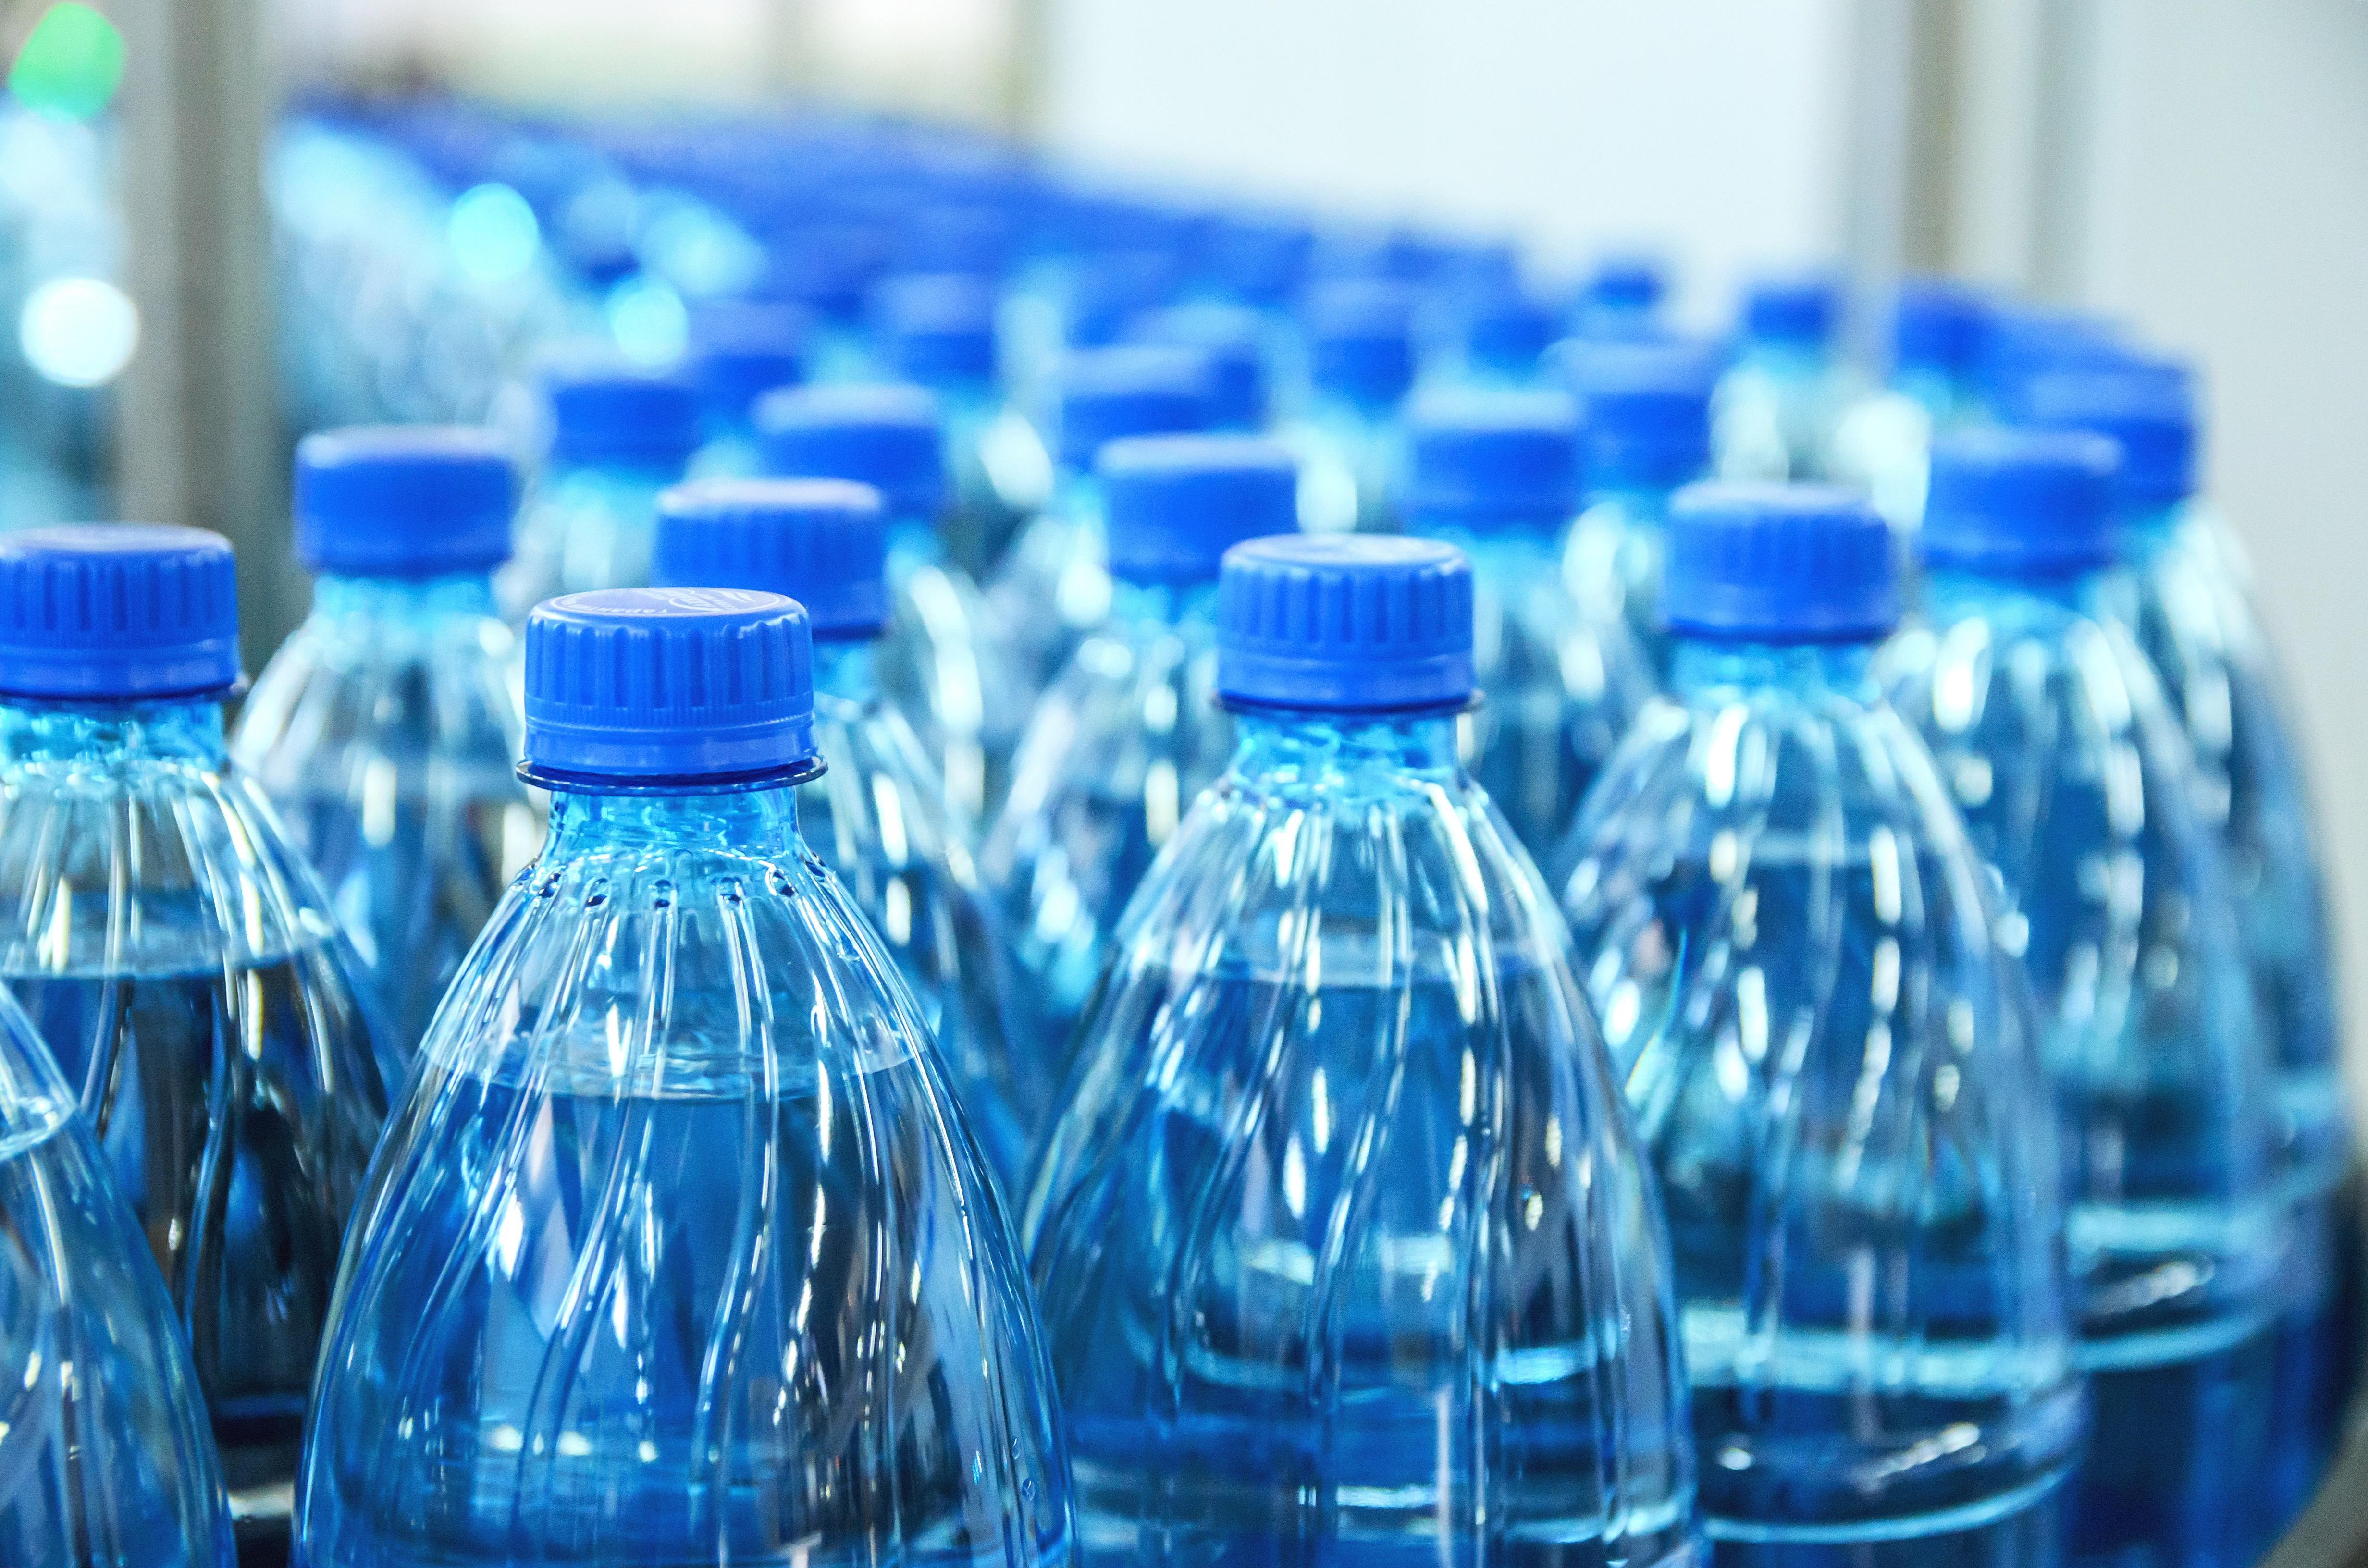 A row of bottled water